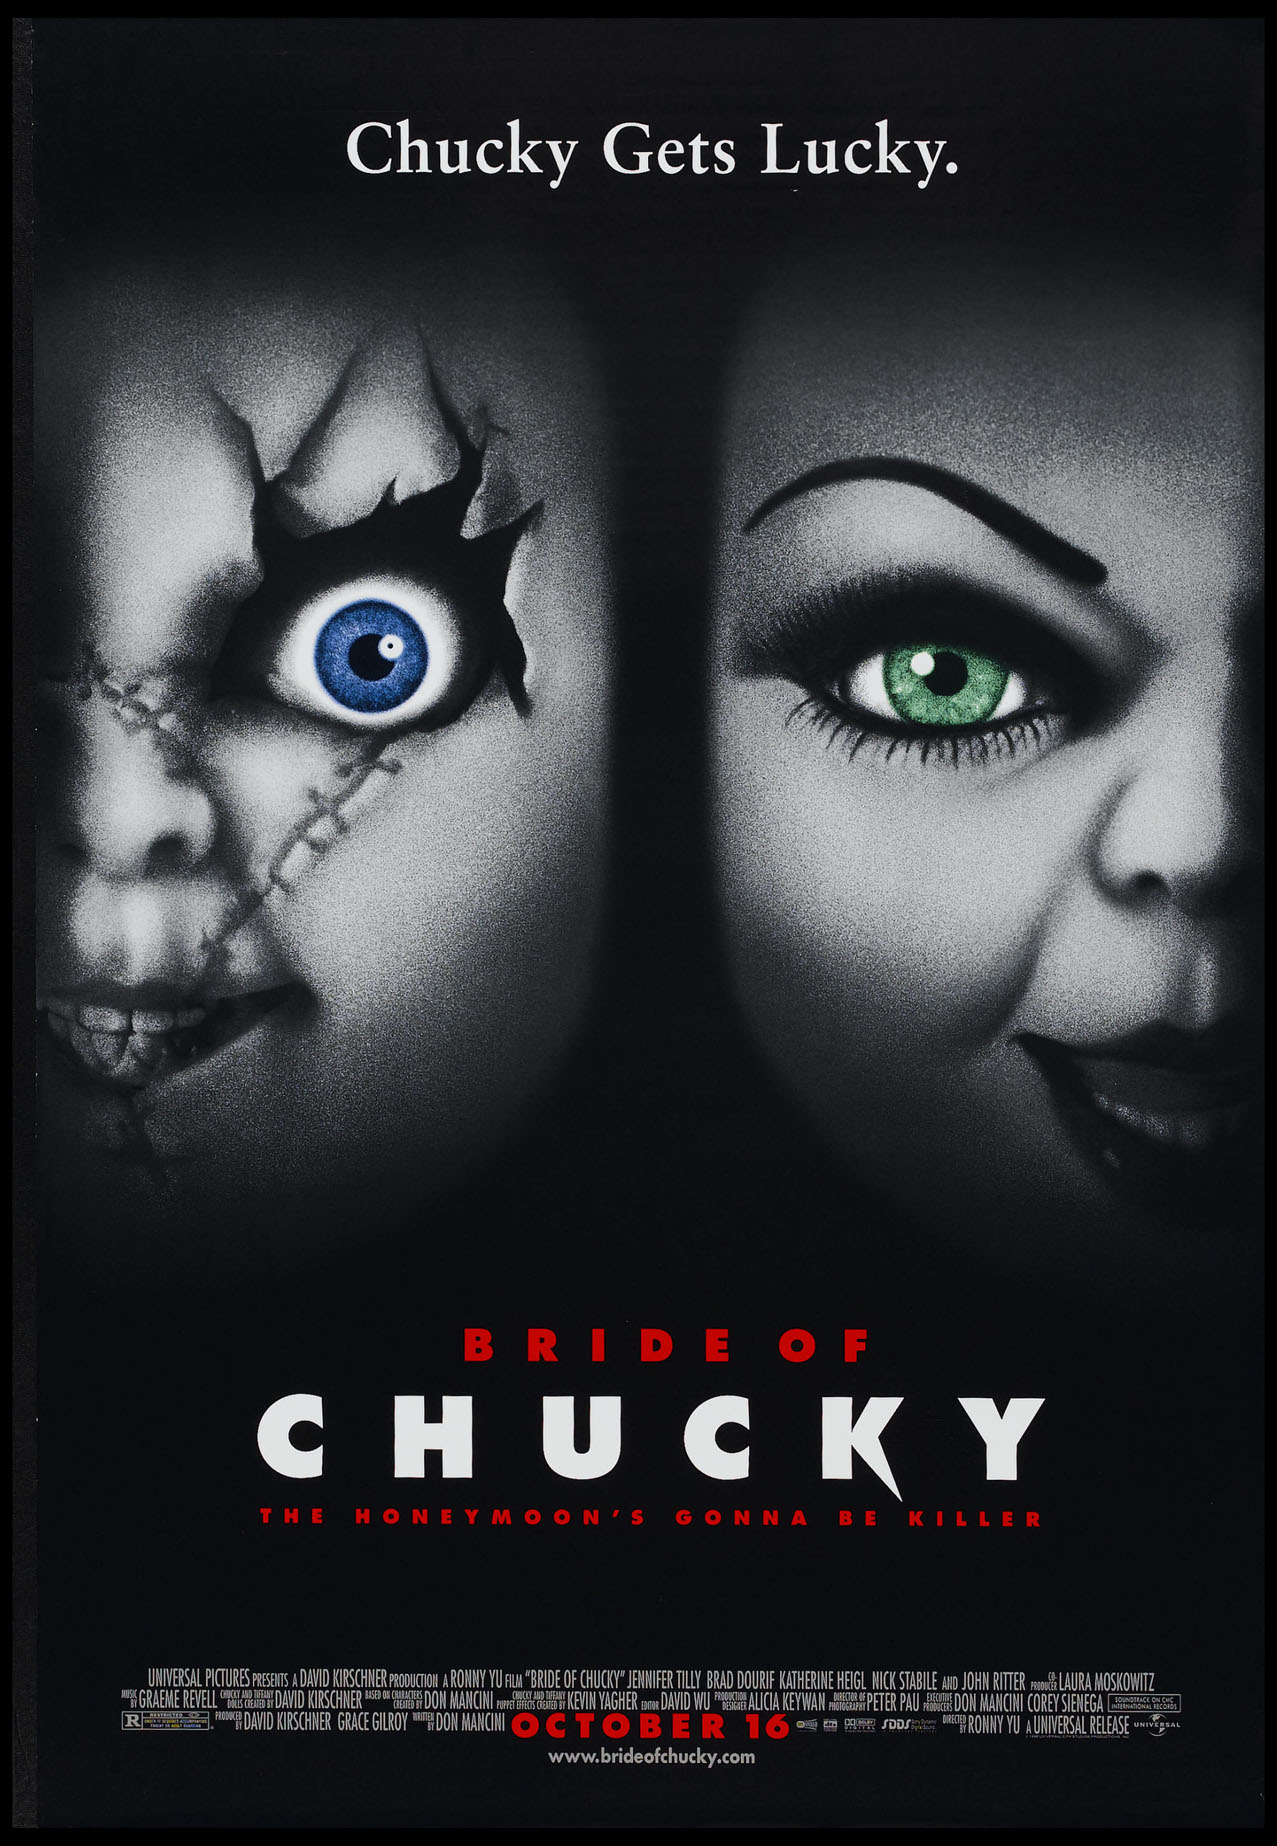 BRIDE OF CHUCKY (Child's Play series) @ FilmPosters.com